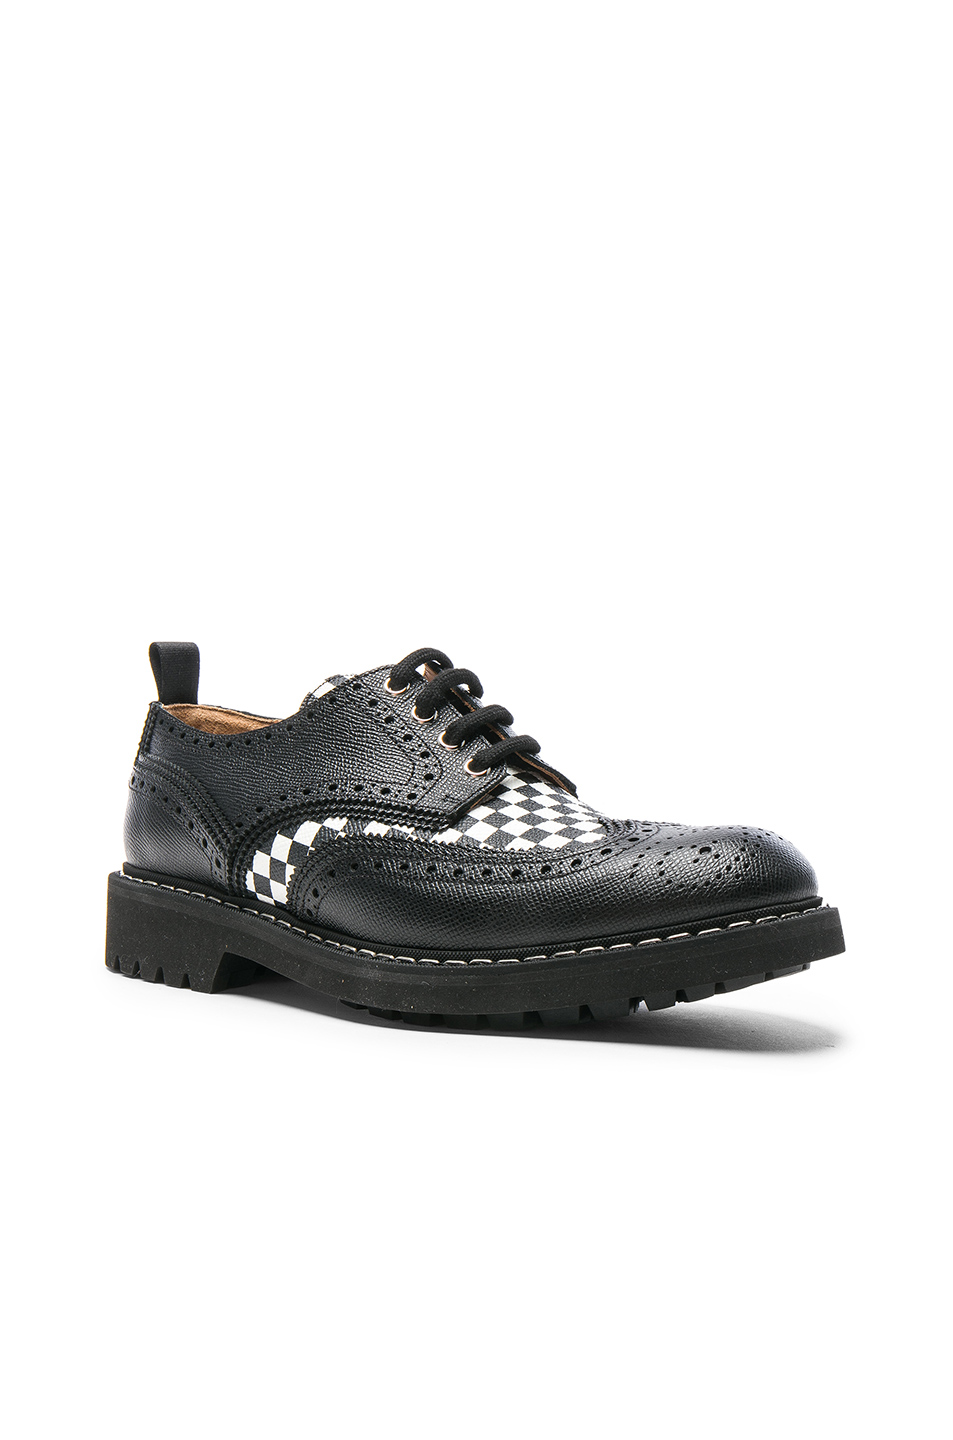 Givenchy Checkerboard Leather Dress Shoes in Black,Checkered & Plaid